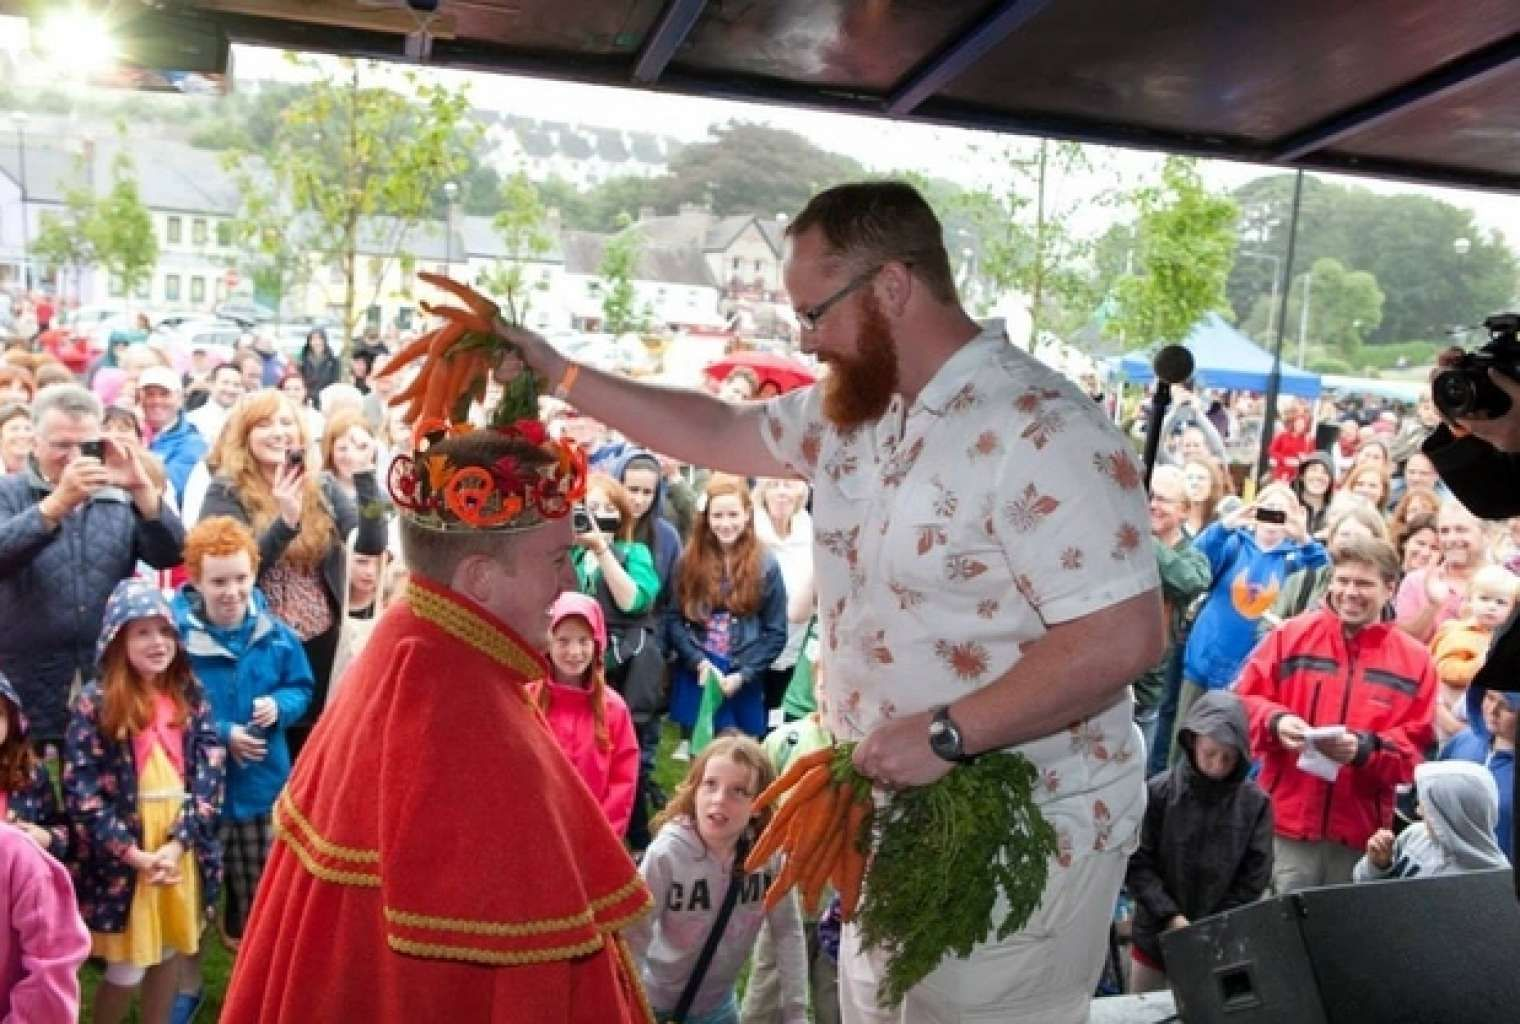 De 'Carrot Top' Koning van de Irish Redhead Convention wordt gekroond, met…